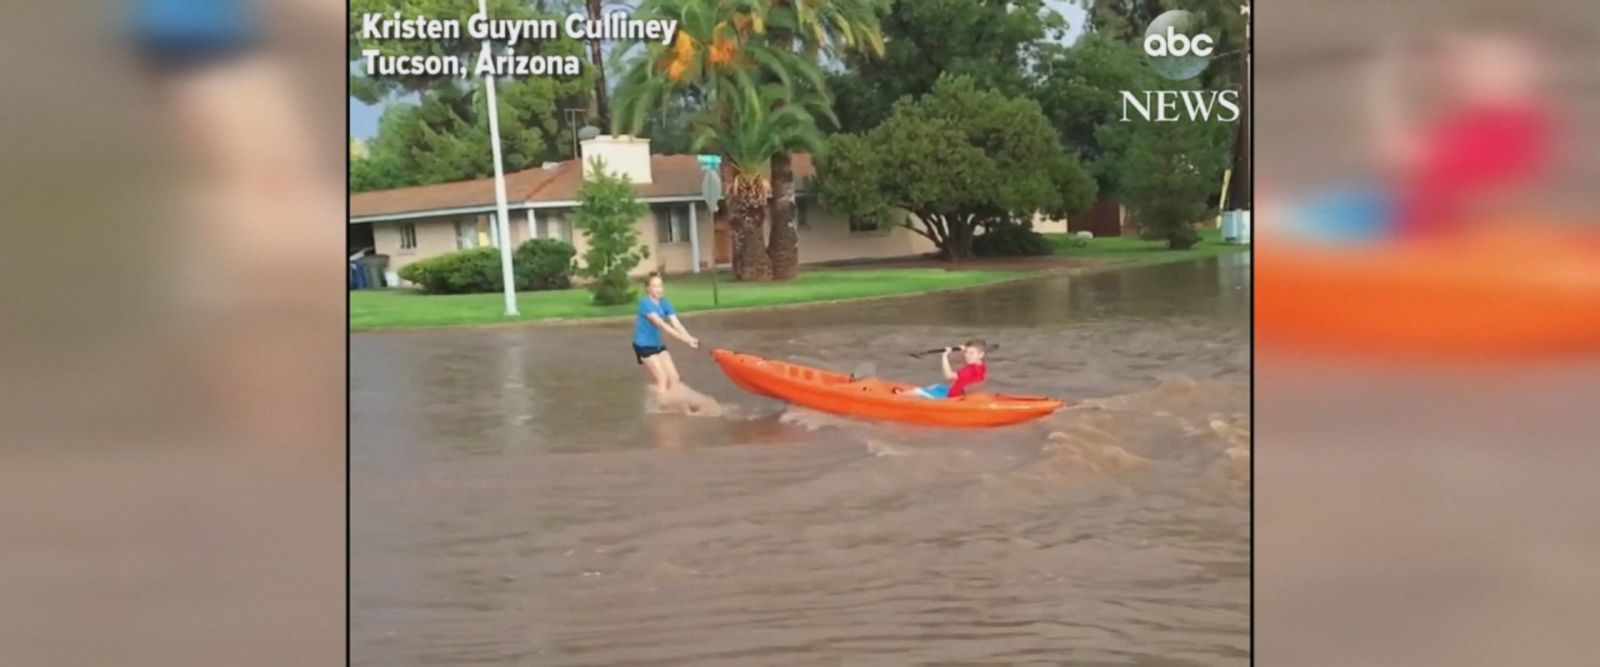 People went kayaking through the flooded streets of Tucson, Arizona, after a monsoon caused flash flooding in the area.